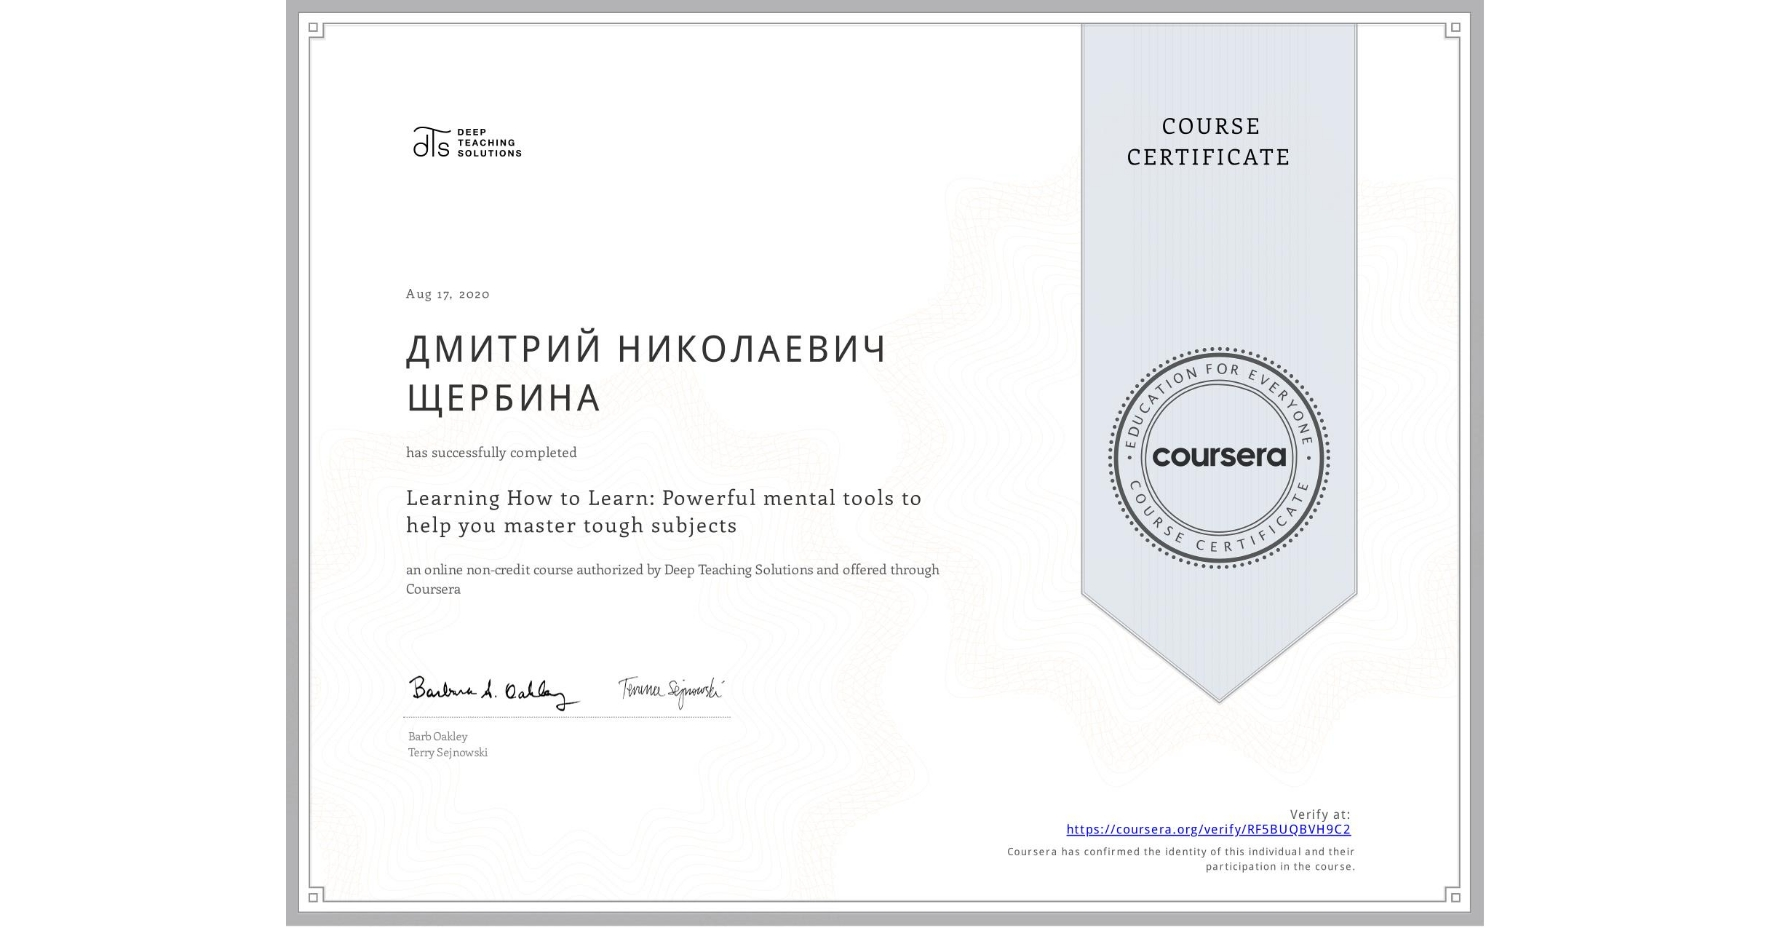 View certificate for ДМИТРИЙ НИКОЛАЕВИЧ ЩЕРБИНА, Learning How to Learn: Powerful mental tools to help you master tough subjects, an online non-credit course authorized by McMaster University & University of California San Diego and offered through Coursera